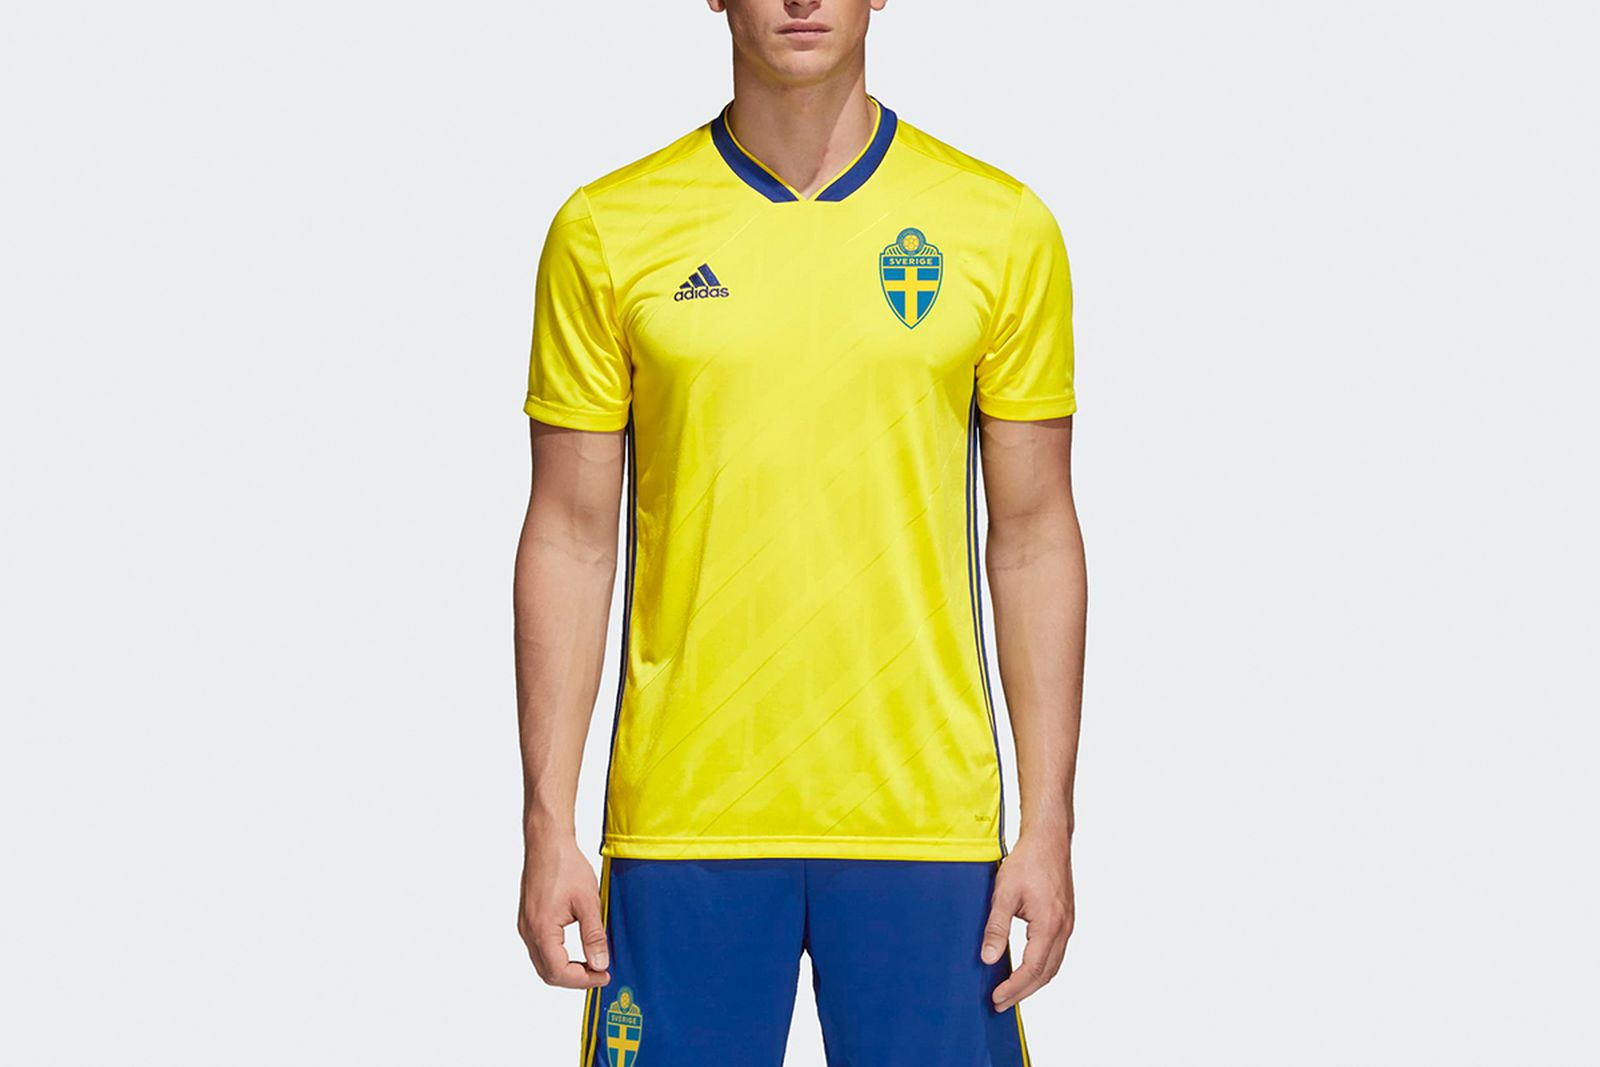 Sweden Home Jersey Yellow BR3838 21 model 2018 FIFA World Cup Adidas